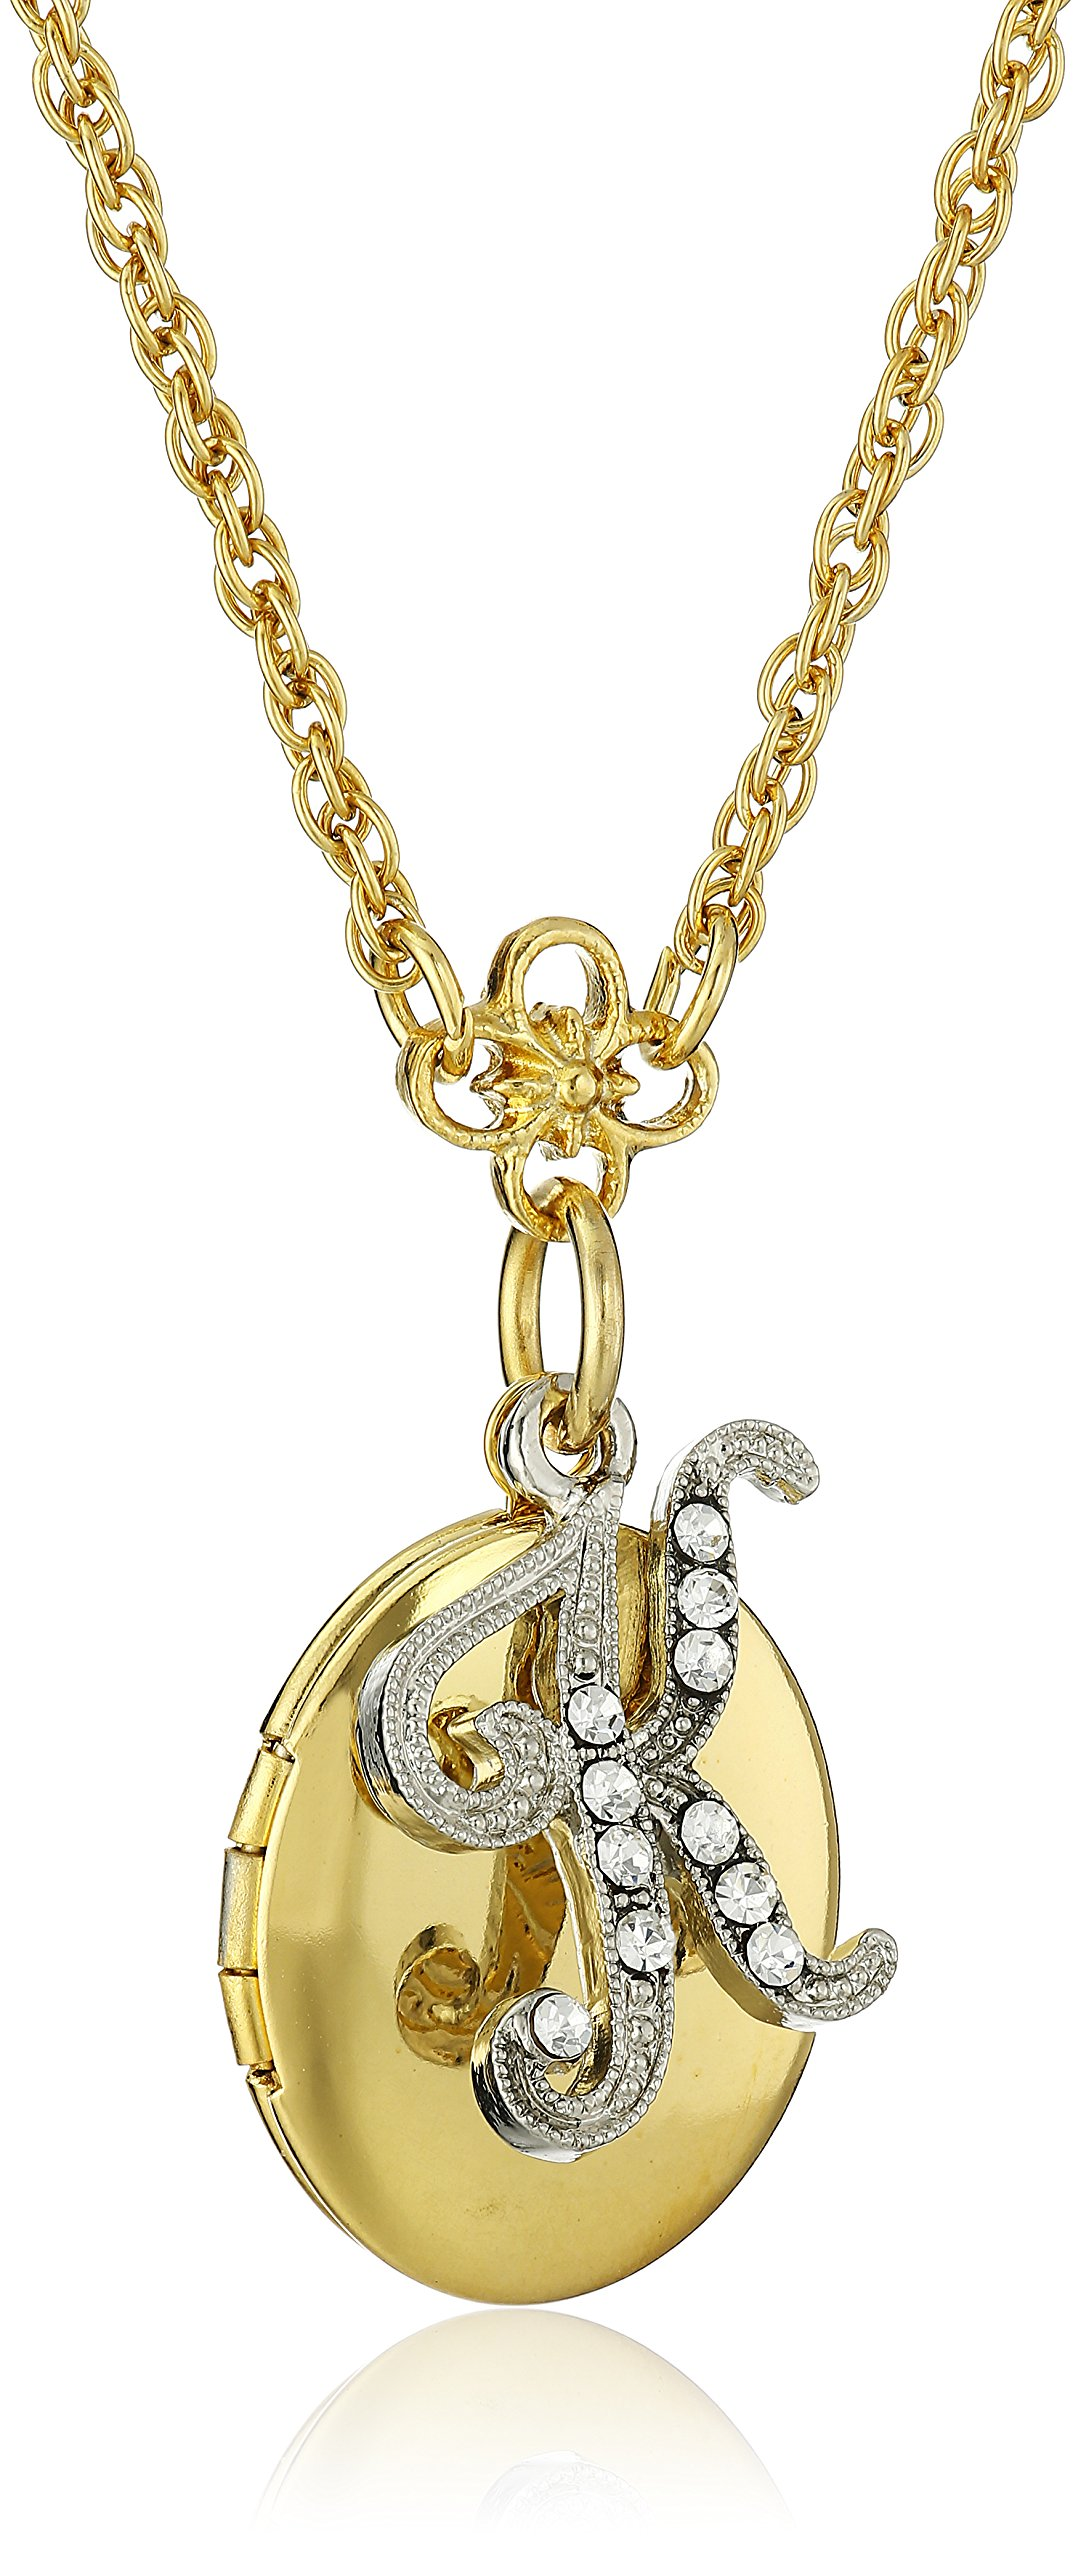 1928 Jewelry Gold and Silver Tone Crystal Initial K Locket Necklace, 16'' + 3'' Extender by 1928 Jewelry